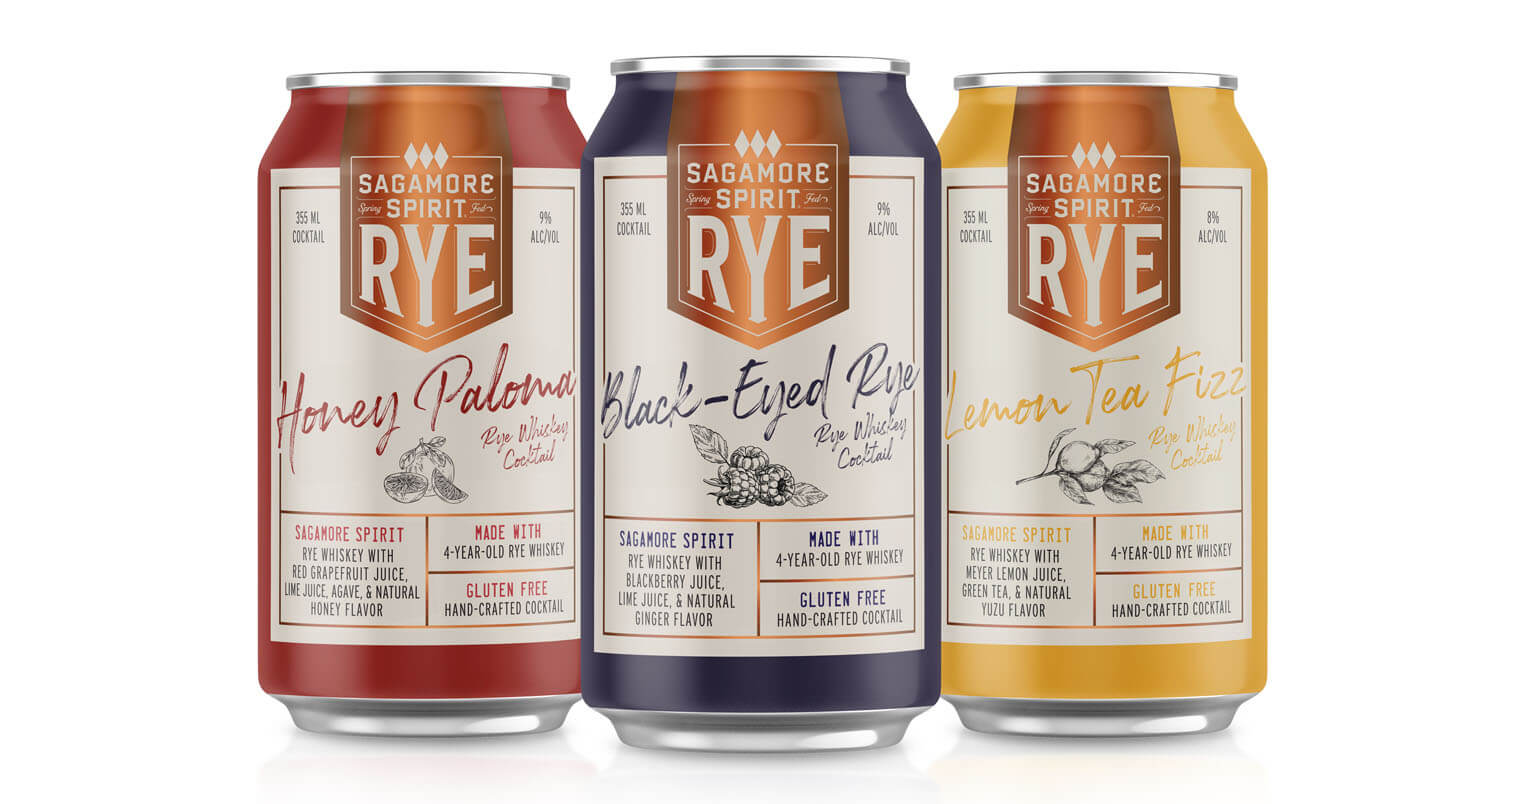 Sagamore Spirit RTD Canned Cocktails, featured image